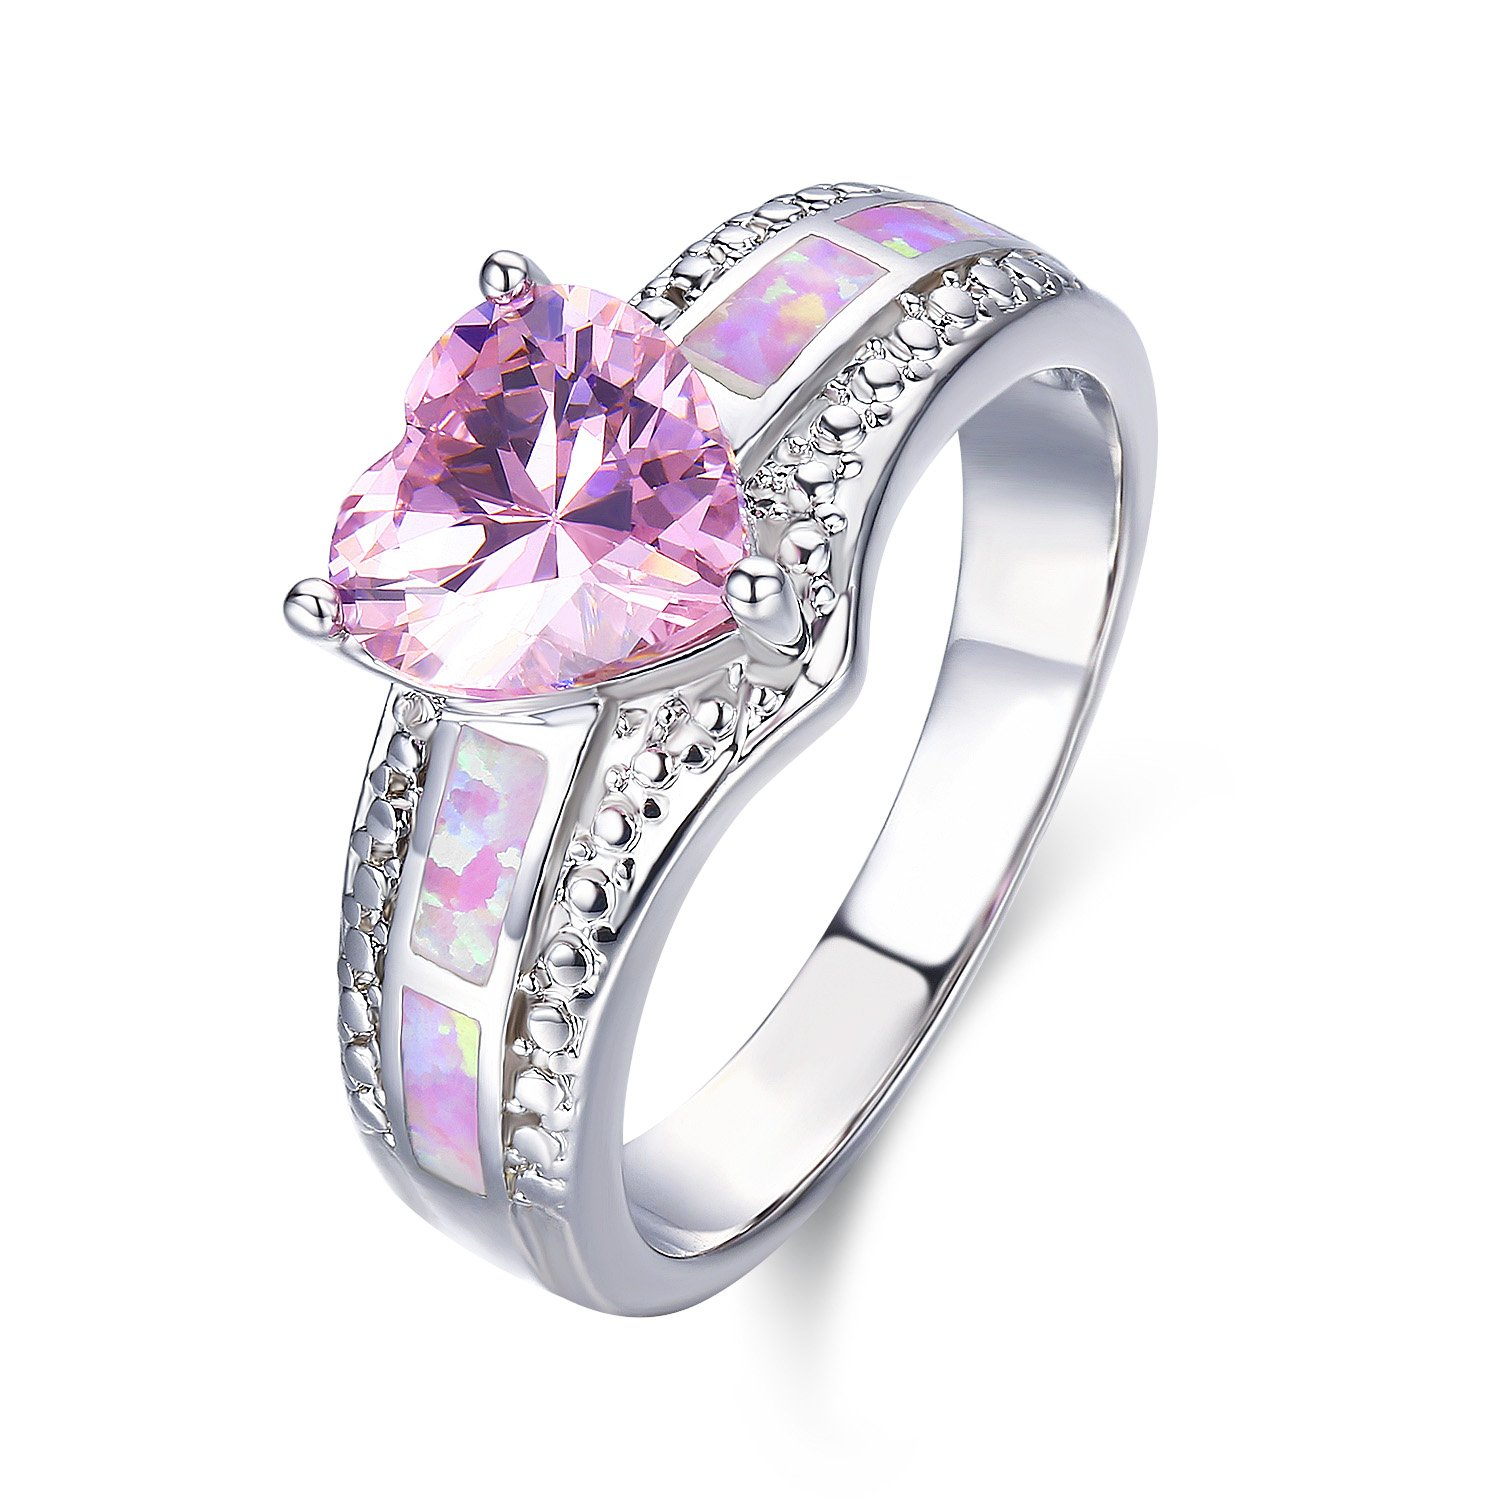 LAVUMO Pink Opal Cute Heart Cubic Zirconia Women Eternity Promise Engagement Rings for Her Gift Band White Gold Plated (8)